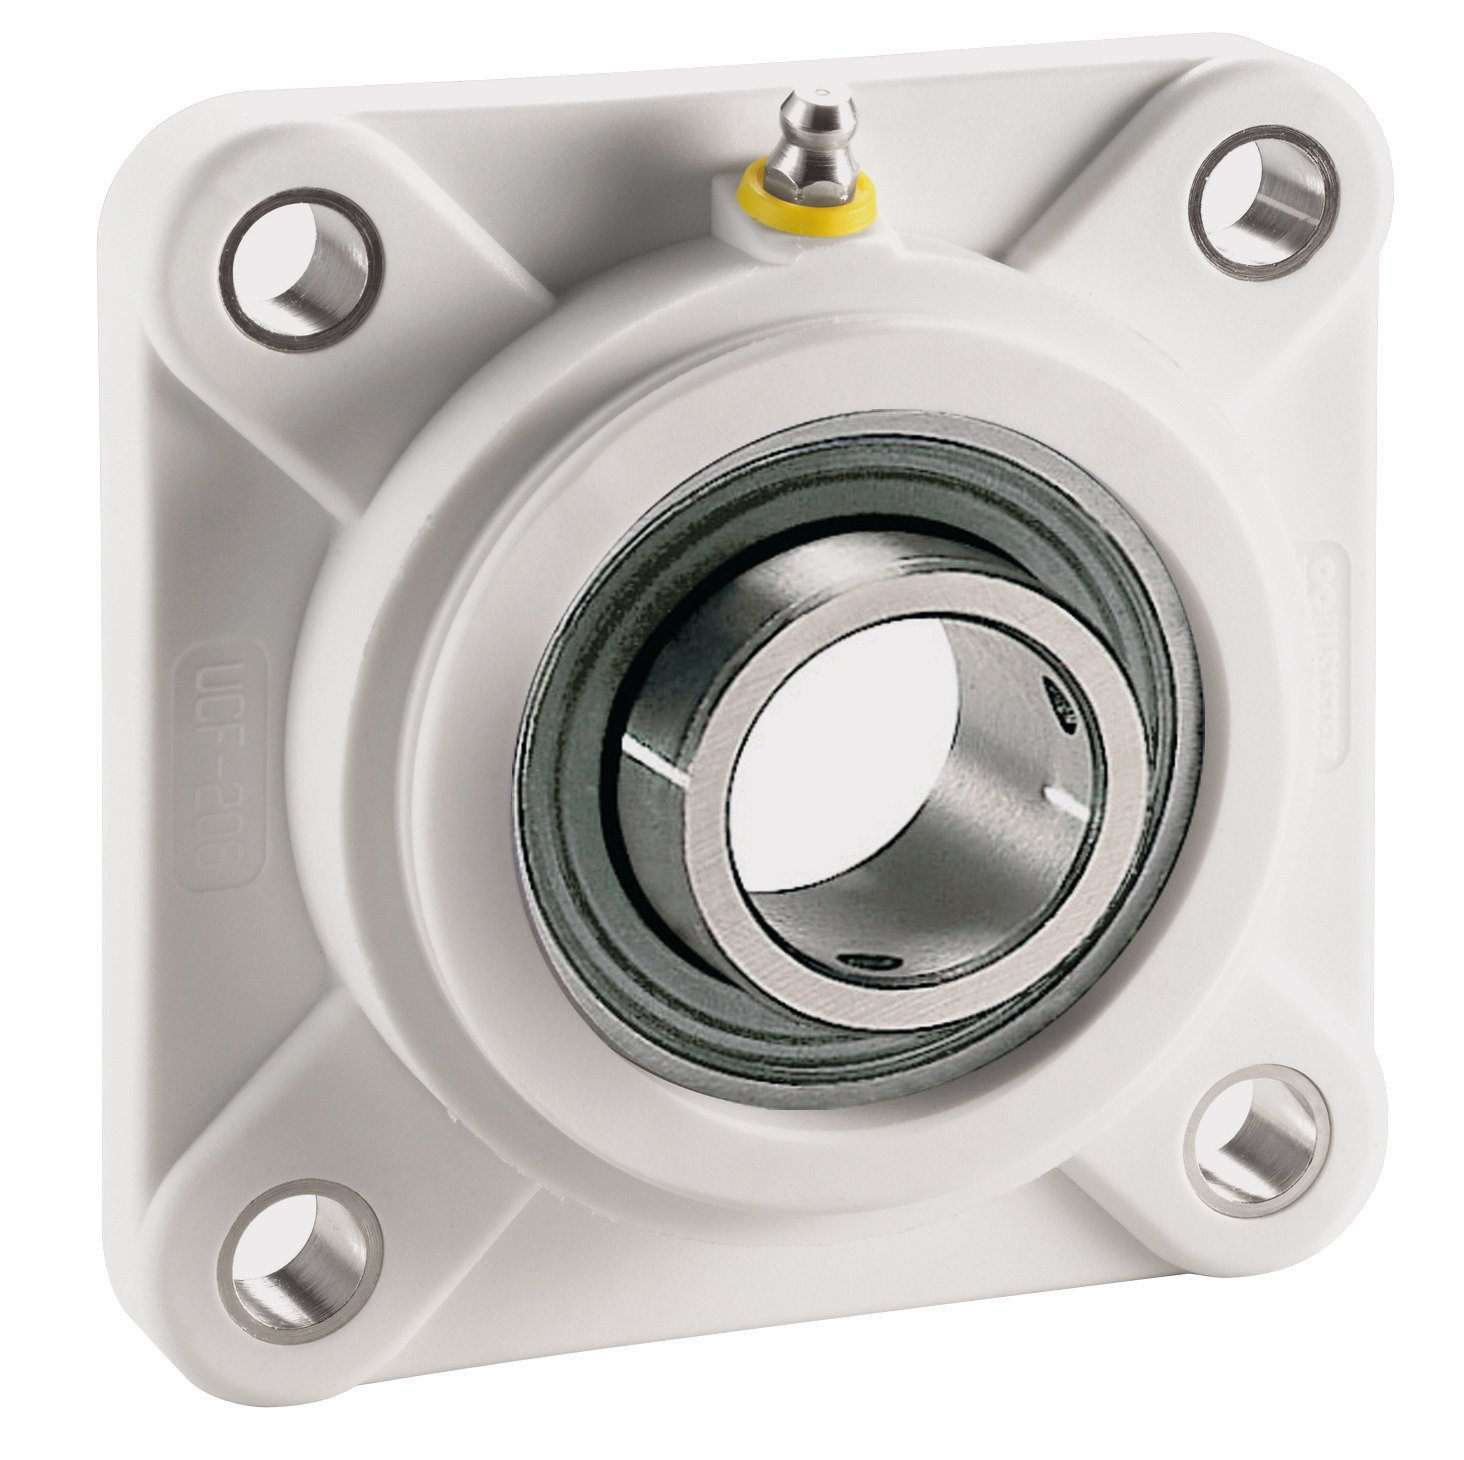 System Plast UCFQ205-16-NC 4-Bolt Flange Bearing, White Nolu-Clean Housing with 1' Bore Diameter White Nolu-Clean Housing with 1 Bore Diameter Regal 70205CG-EC